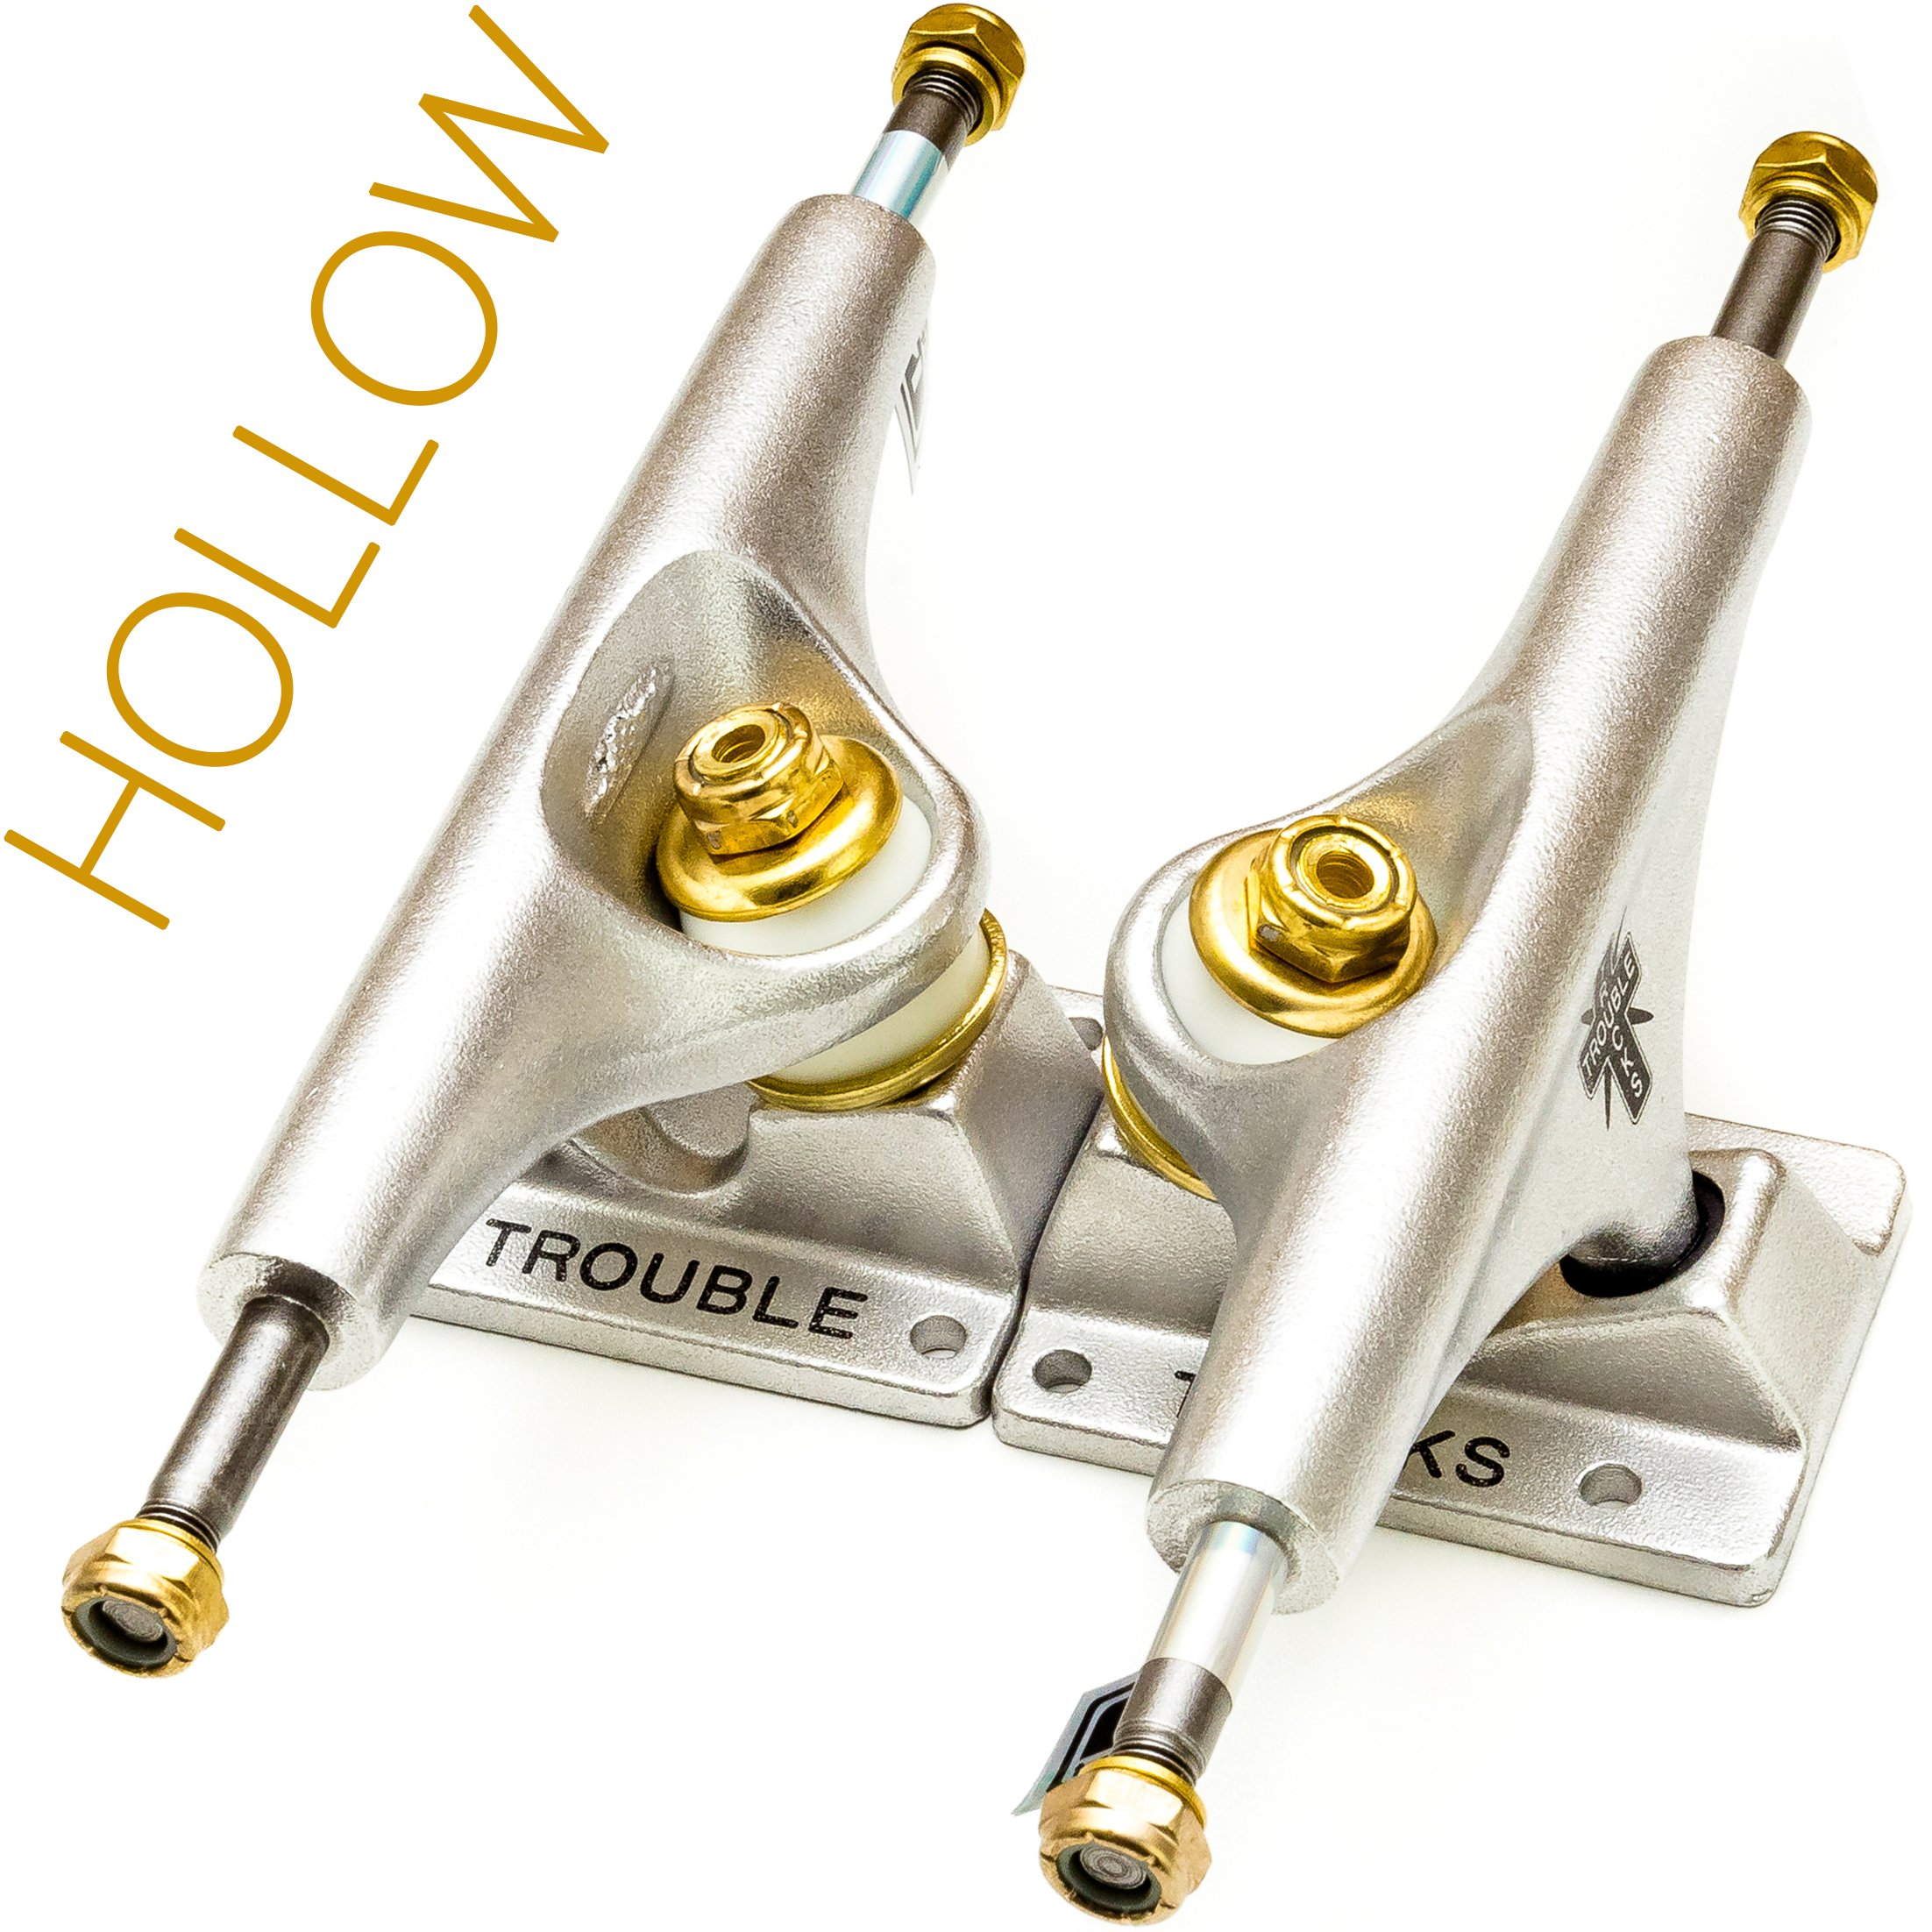 Trouble Trucks Skateboard Truck Hollow Light - 149mm Hanger 8.5'' Axle - Matte Gold Silver - Set of 2 (T3) by TROUBLE SKATEBOARDS